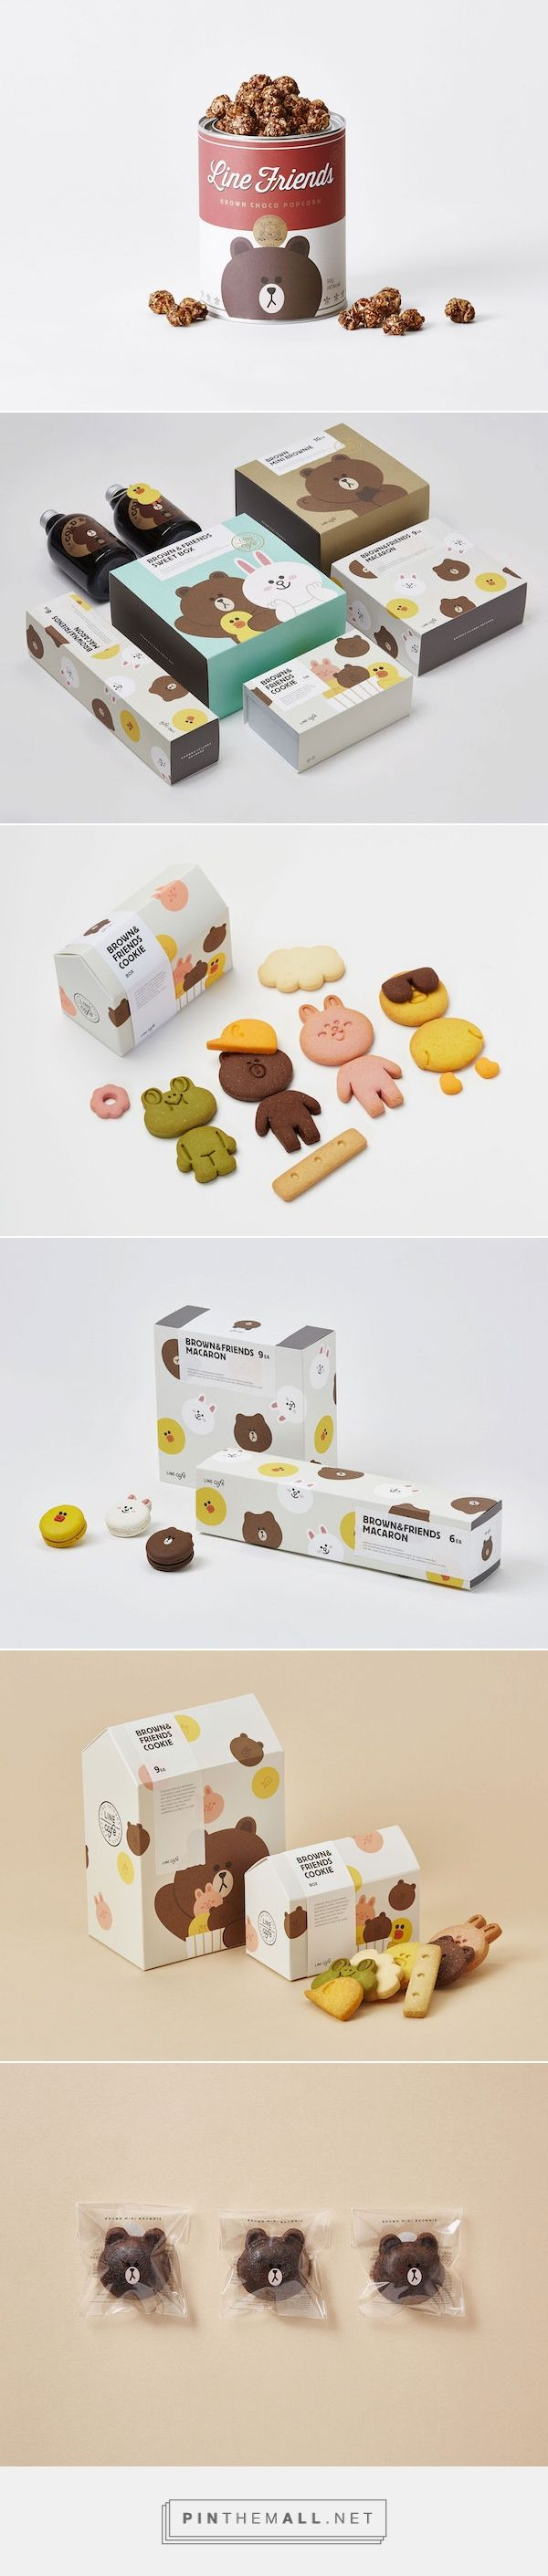 The Award-Winning Packaging Of LINE Café's Snacks via DesignTAXI.com curated by Packaging Diva PD. For the packaging smile file : )